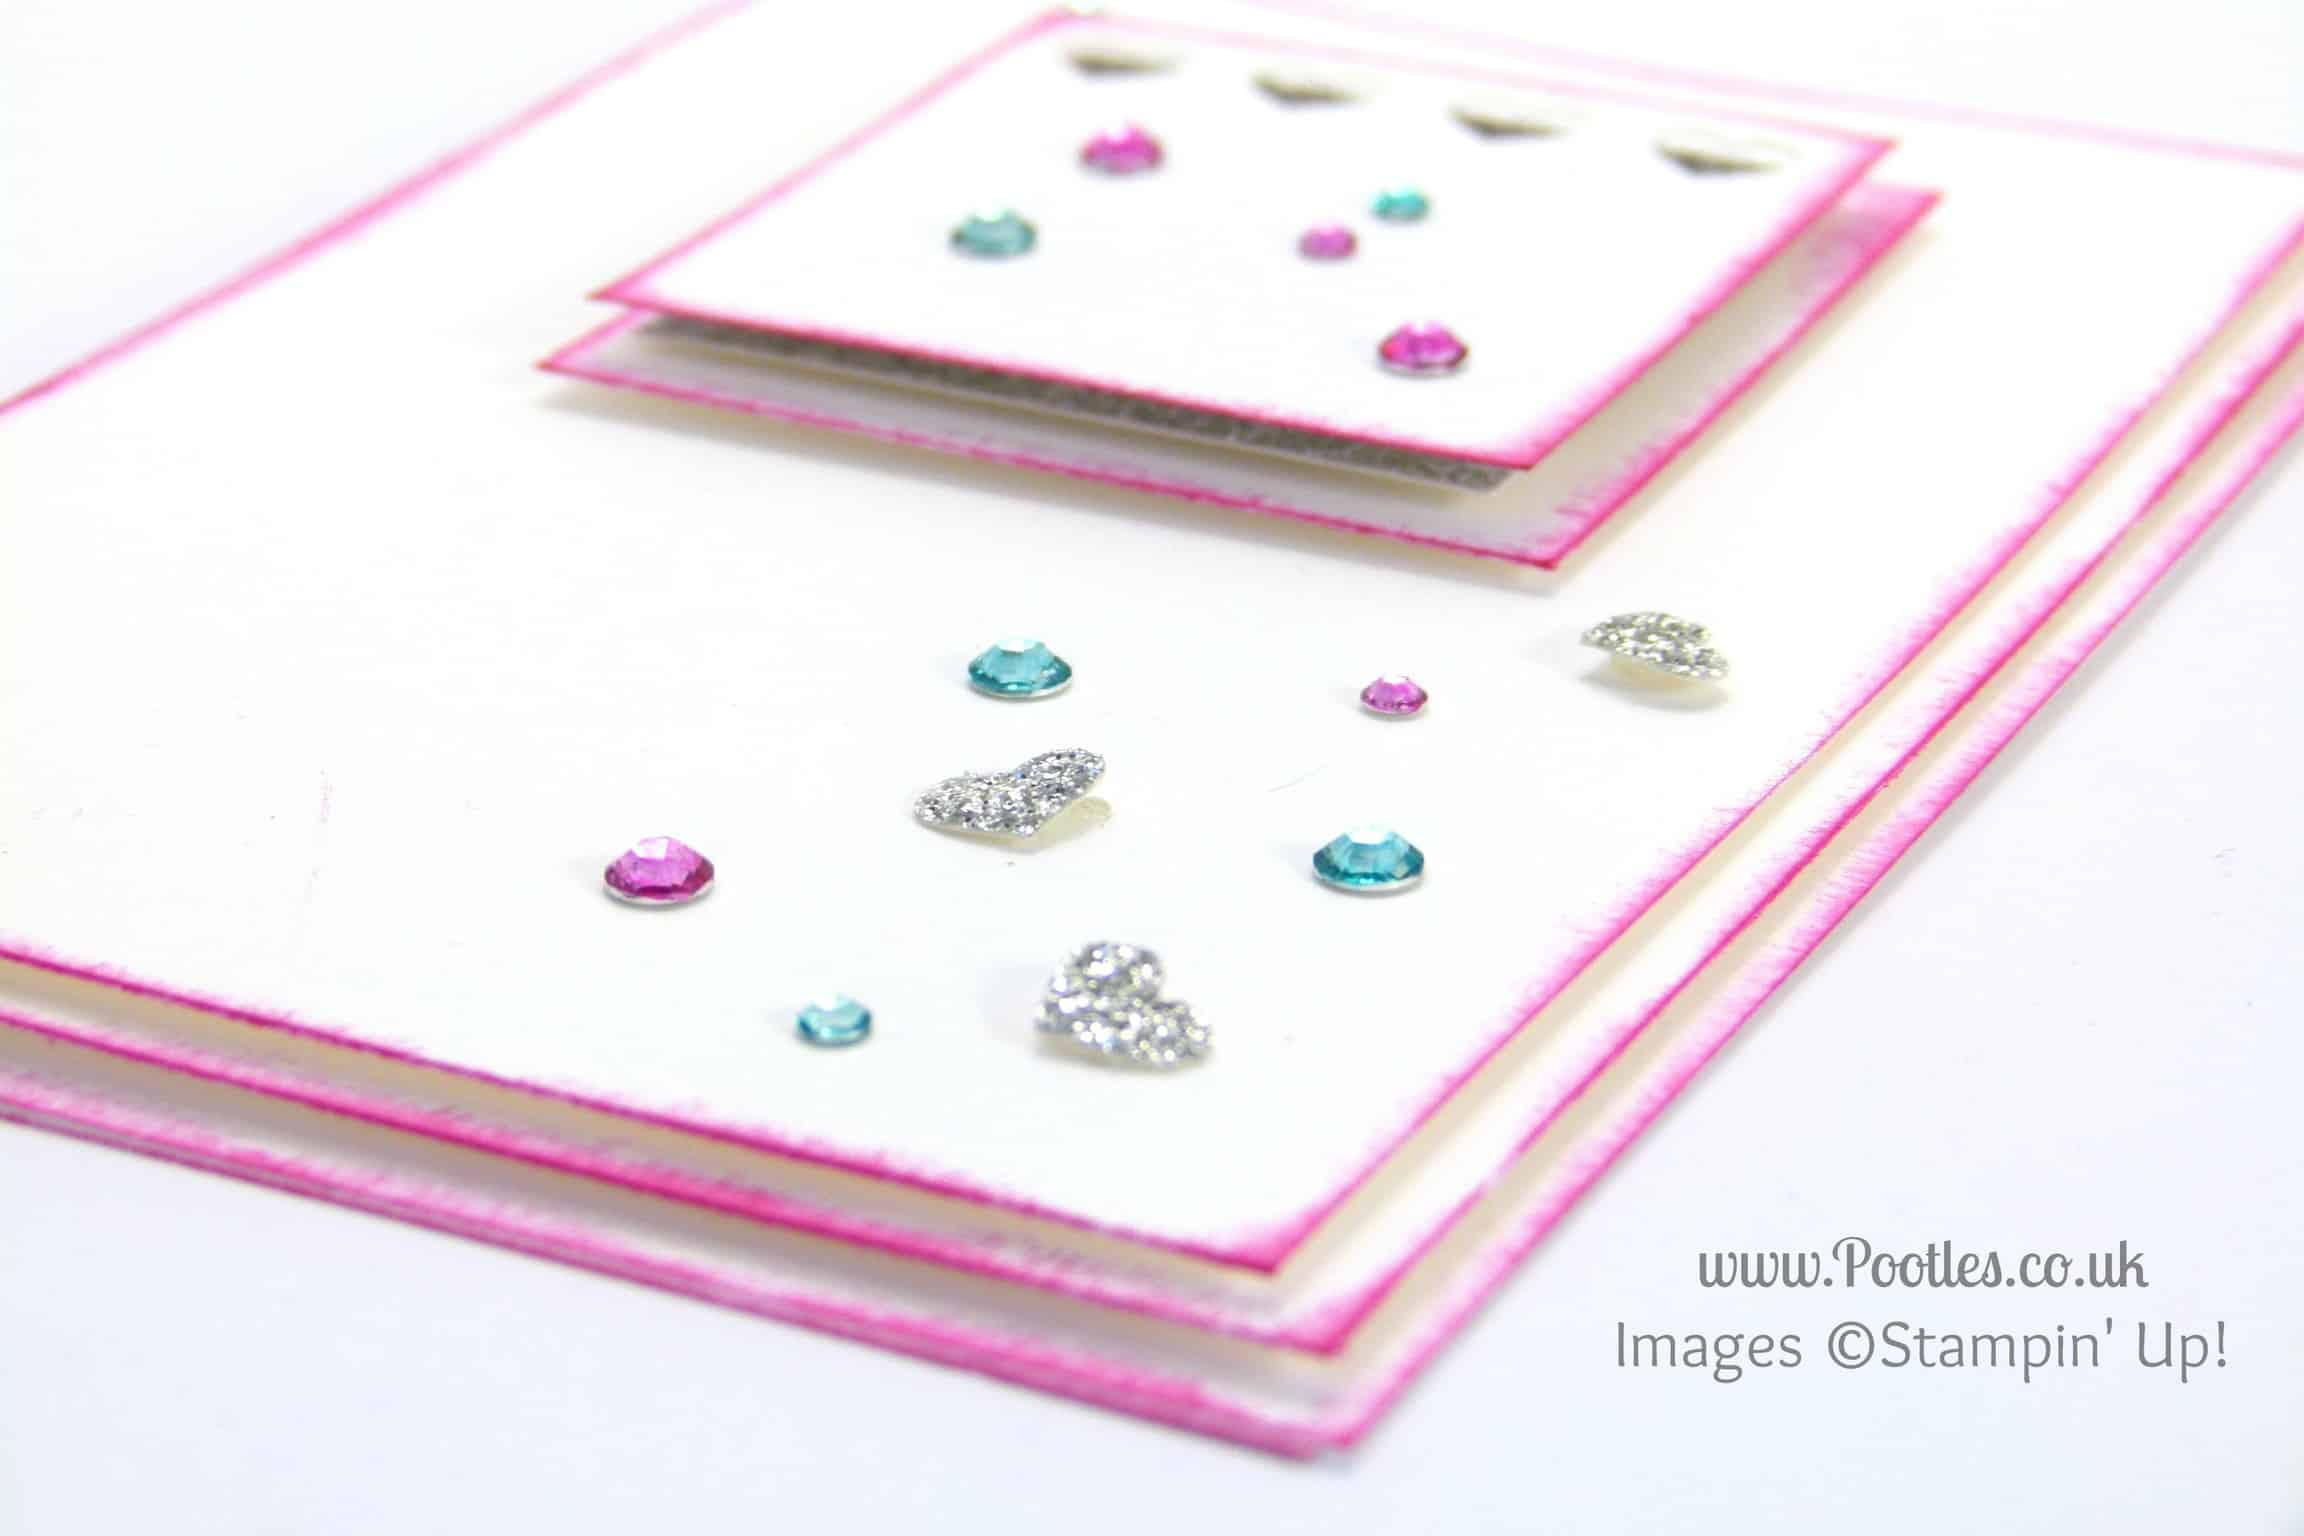 South Hill & Stampin Up on Sunday Pink & Blue Hearts Card Tutorial Blendabilities Rhinestones